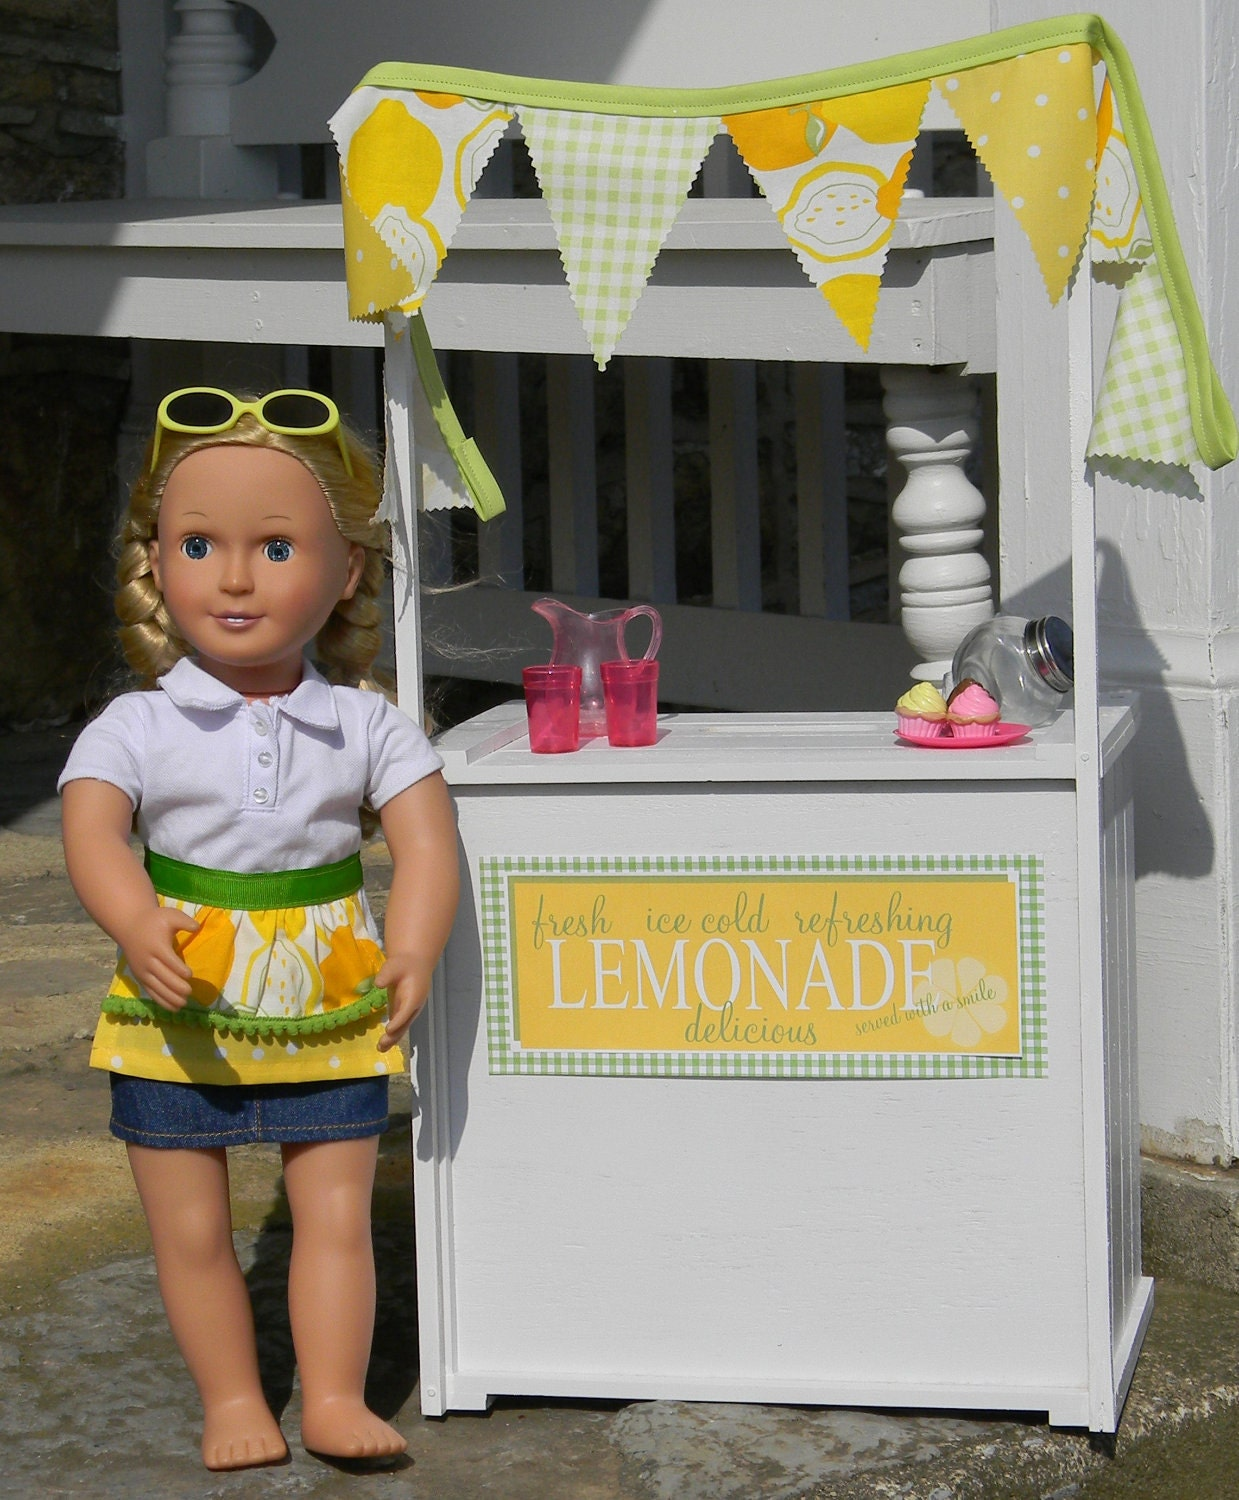 christy lemonade stand